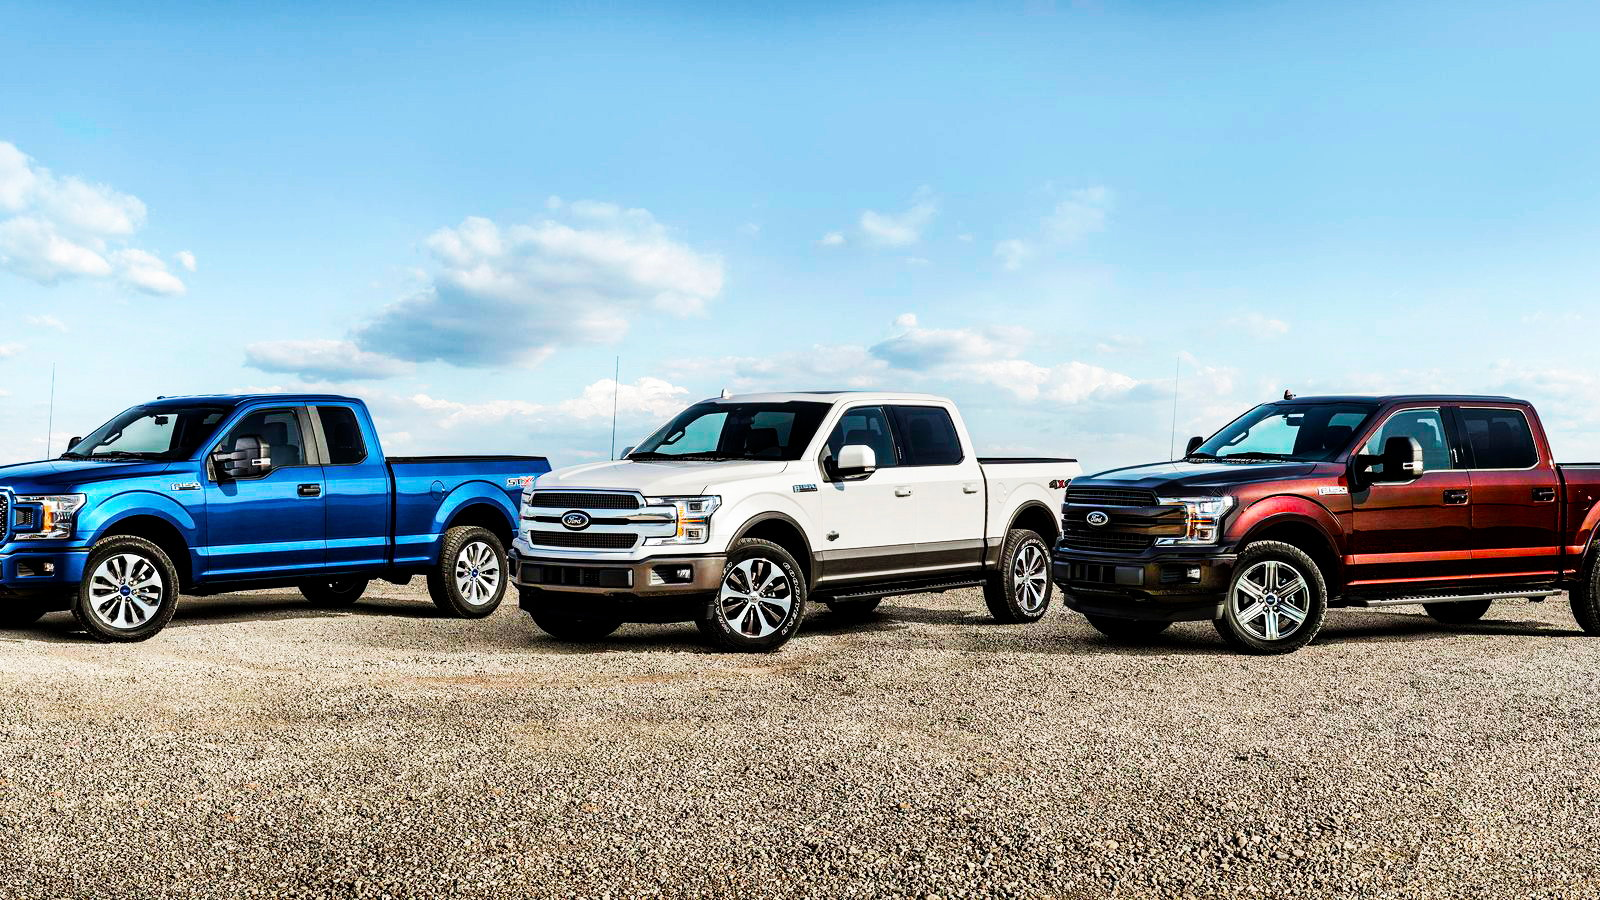 Ohio Dealership Planning on 725HP F-150s for Just $38,000